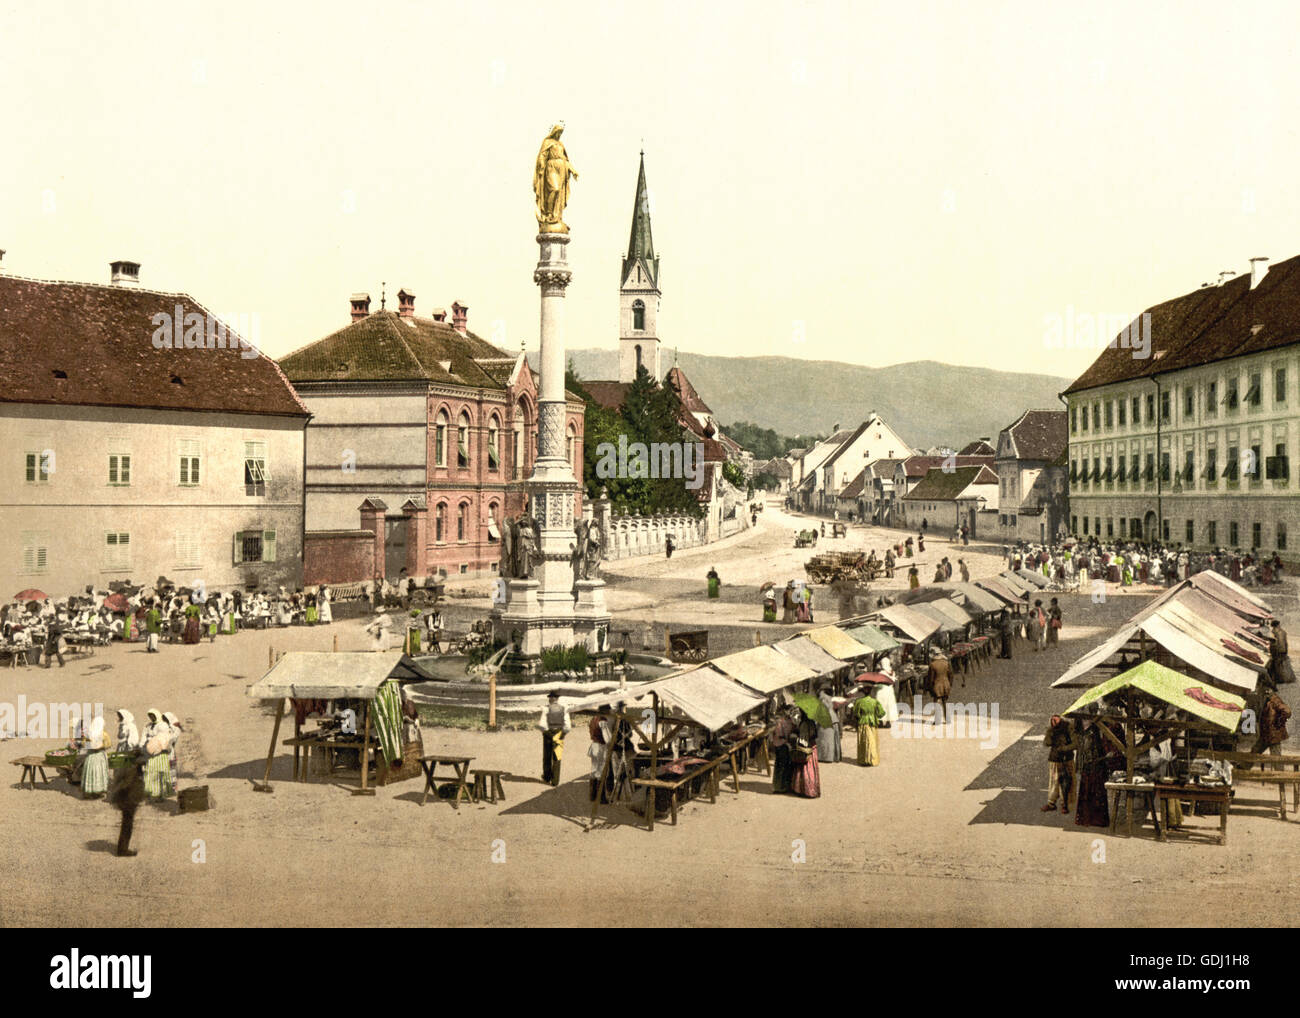 Agram, Capital Palace, with Maria Statue, by Fernkorn, Croatia, Austro-Hungary, circa 1900 - Stock Image